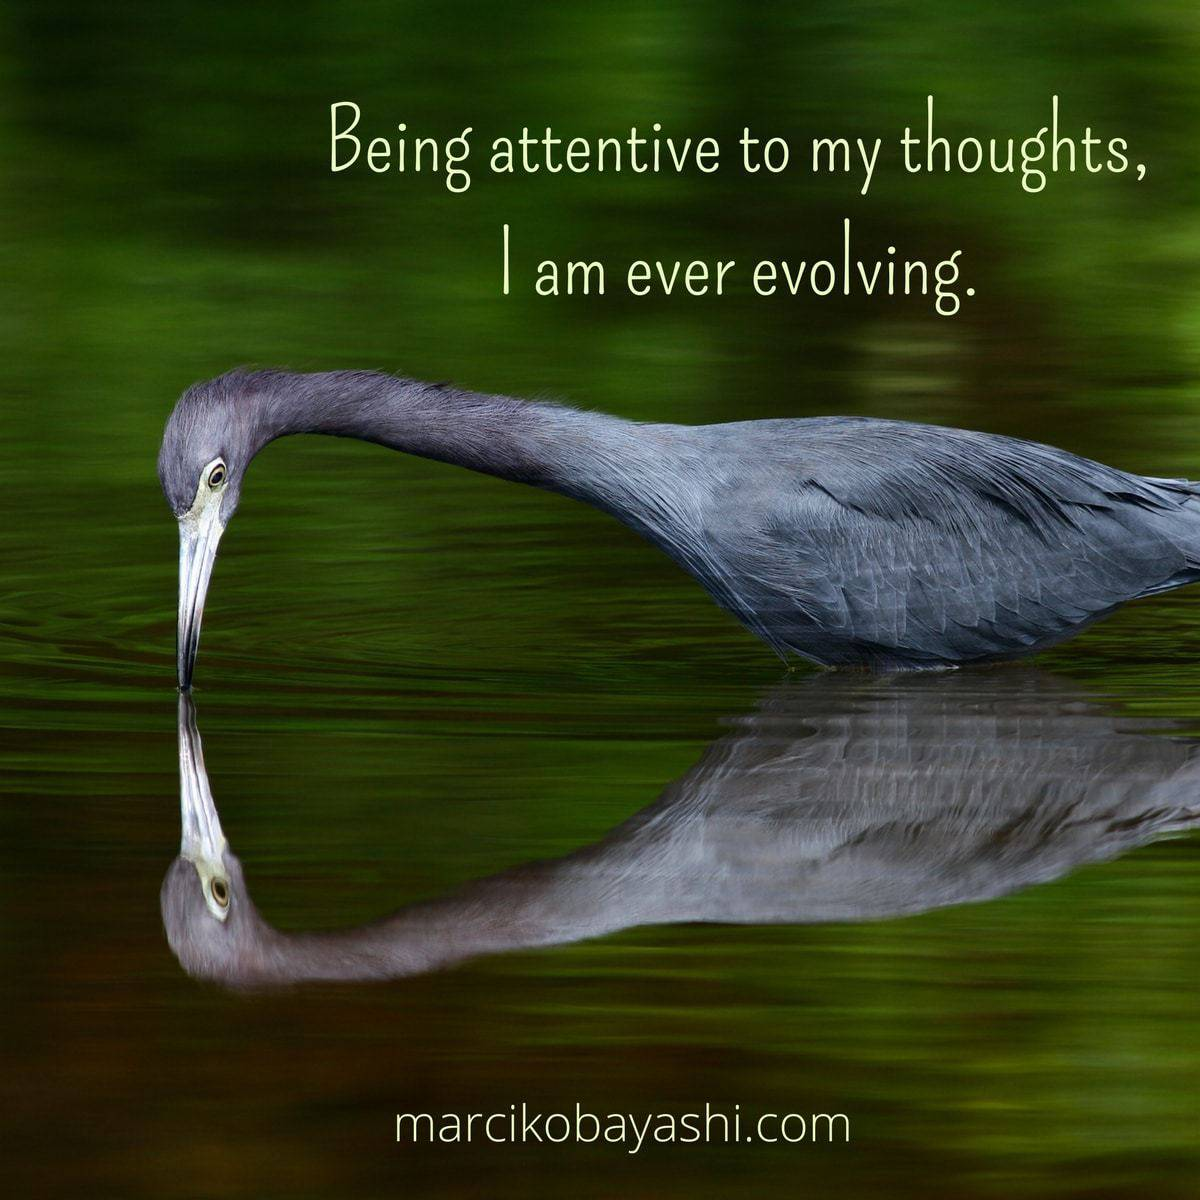 Being attentive to my thoughts, I am ever evolving | Marci's musings at MarciKobayashi.com